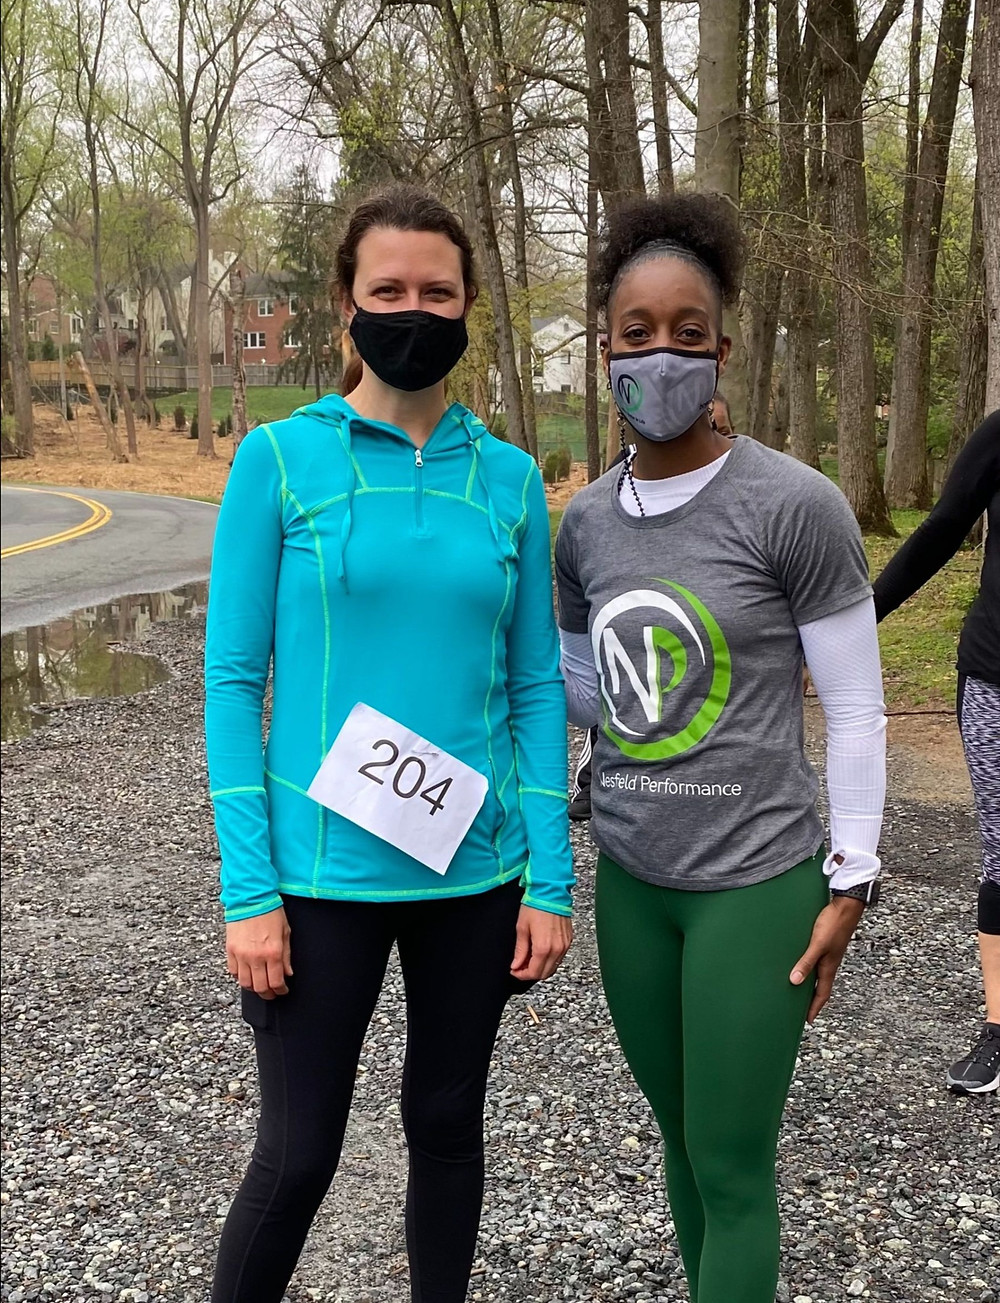 Picture: Bethany Keener, Spirit  Club Foundation executive director, and Tiffany Nesfield, Nesfield  Performance owner and trainer, pose following the 5K.